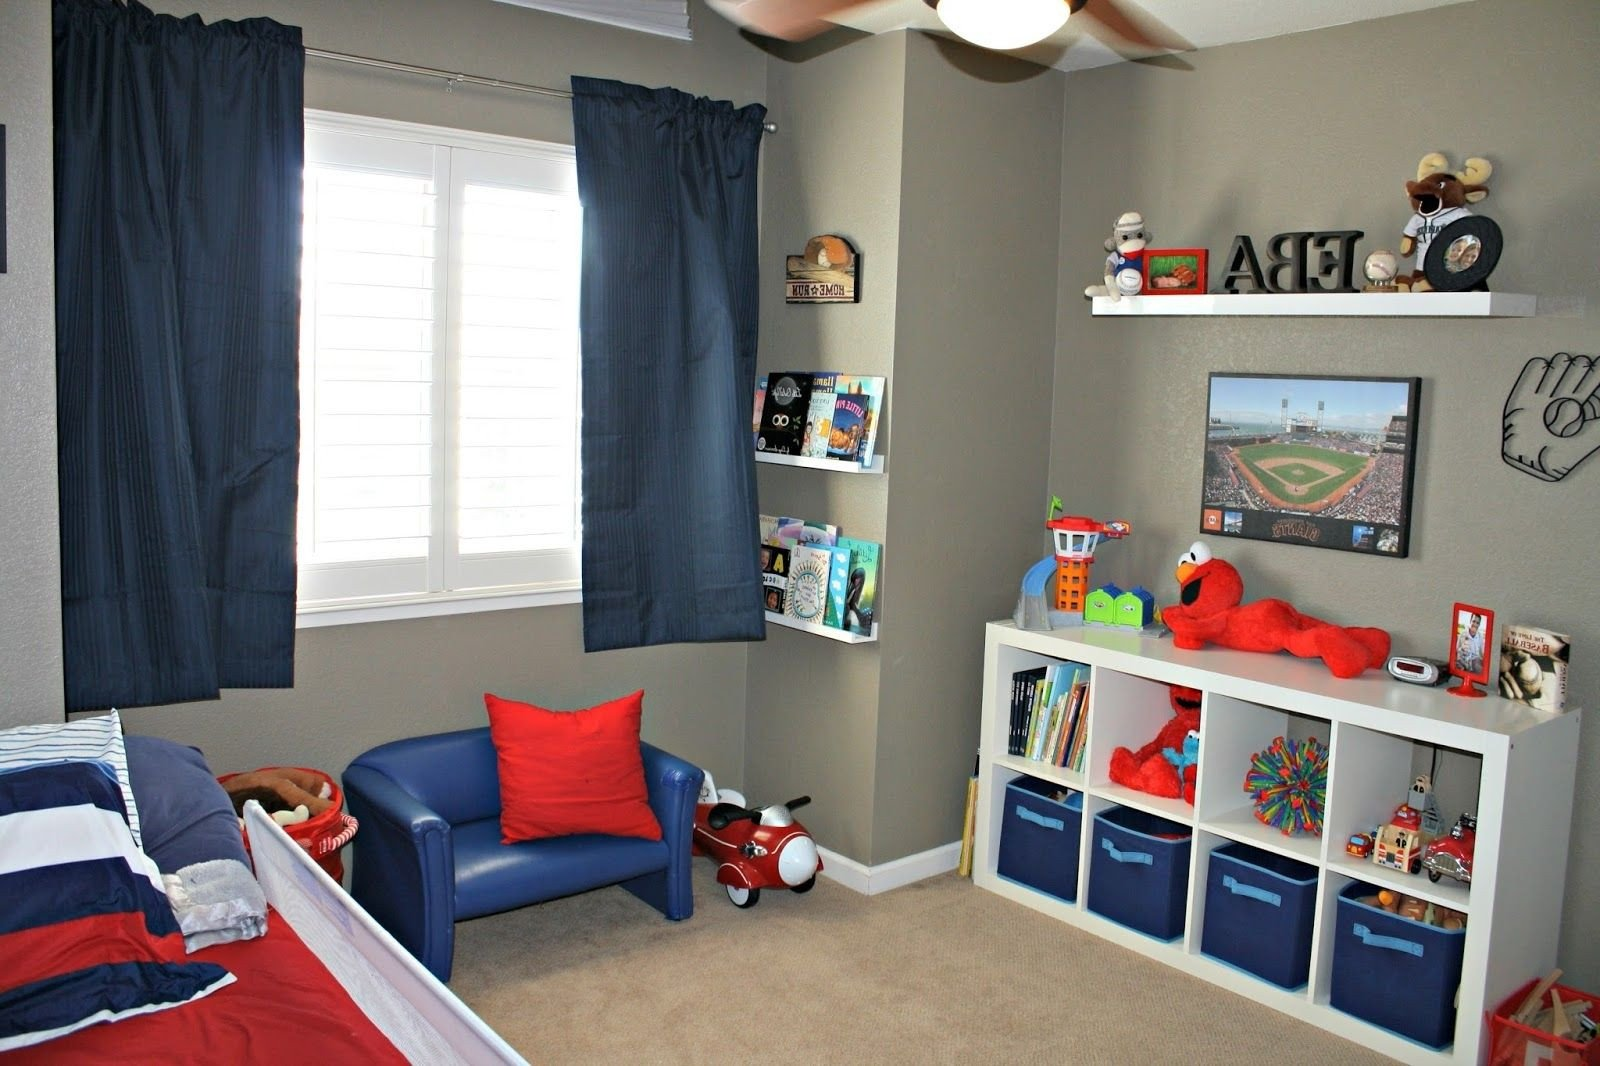 Toddler Boy Room Decor Ideas Elegant Boy Bedroom Ideas Visi Build 3d Home Decor In 2019